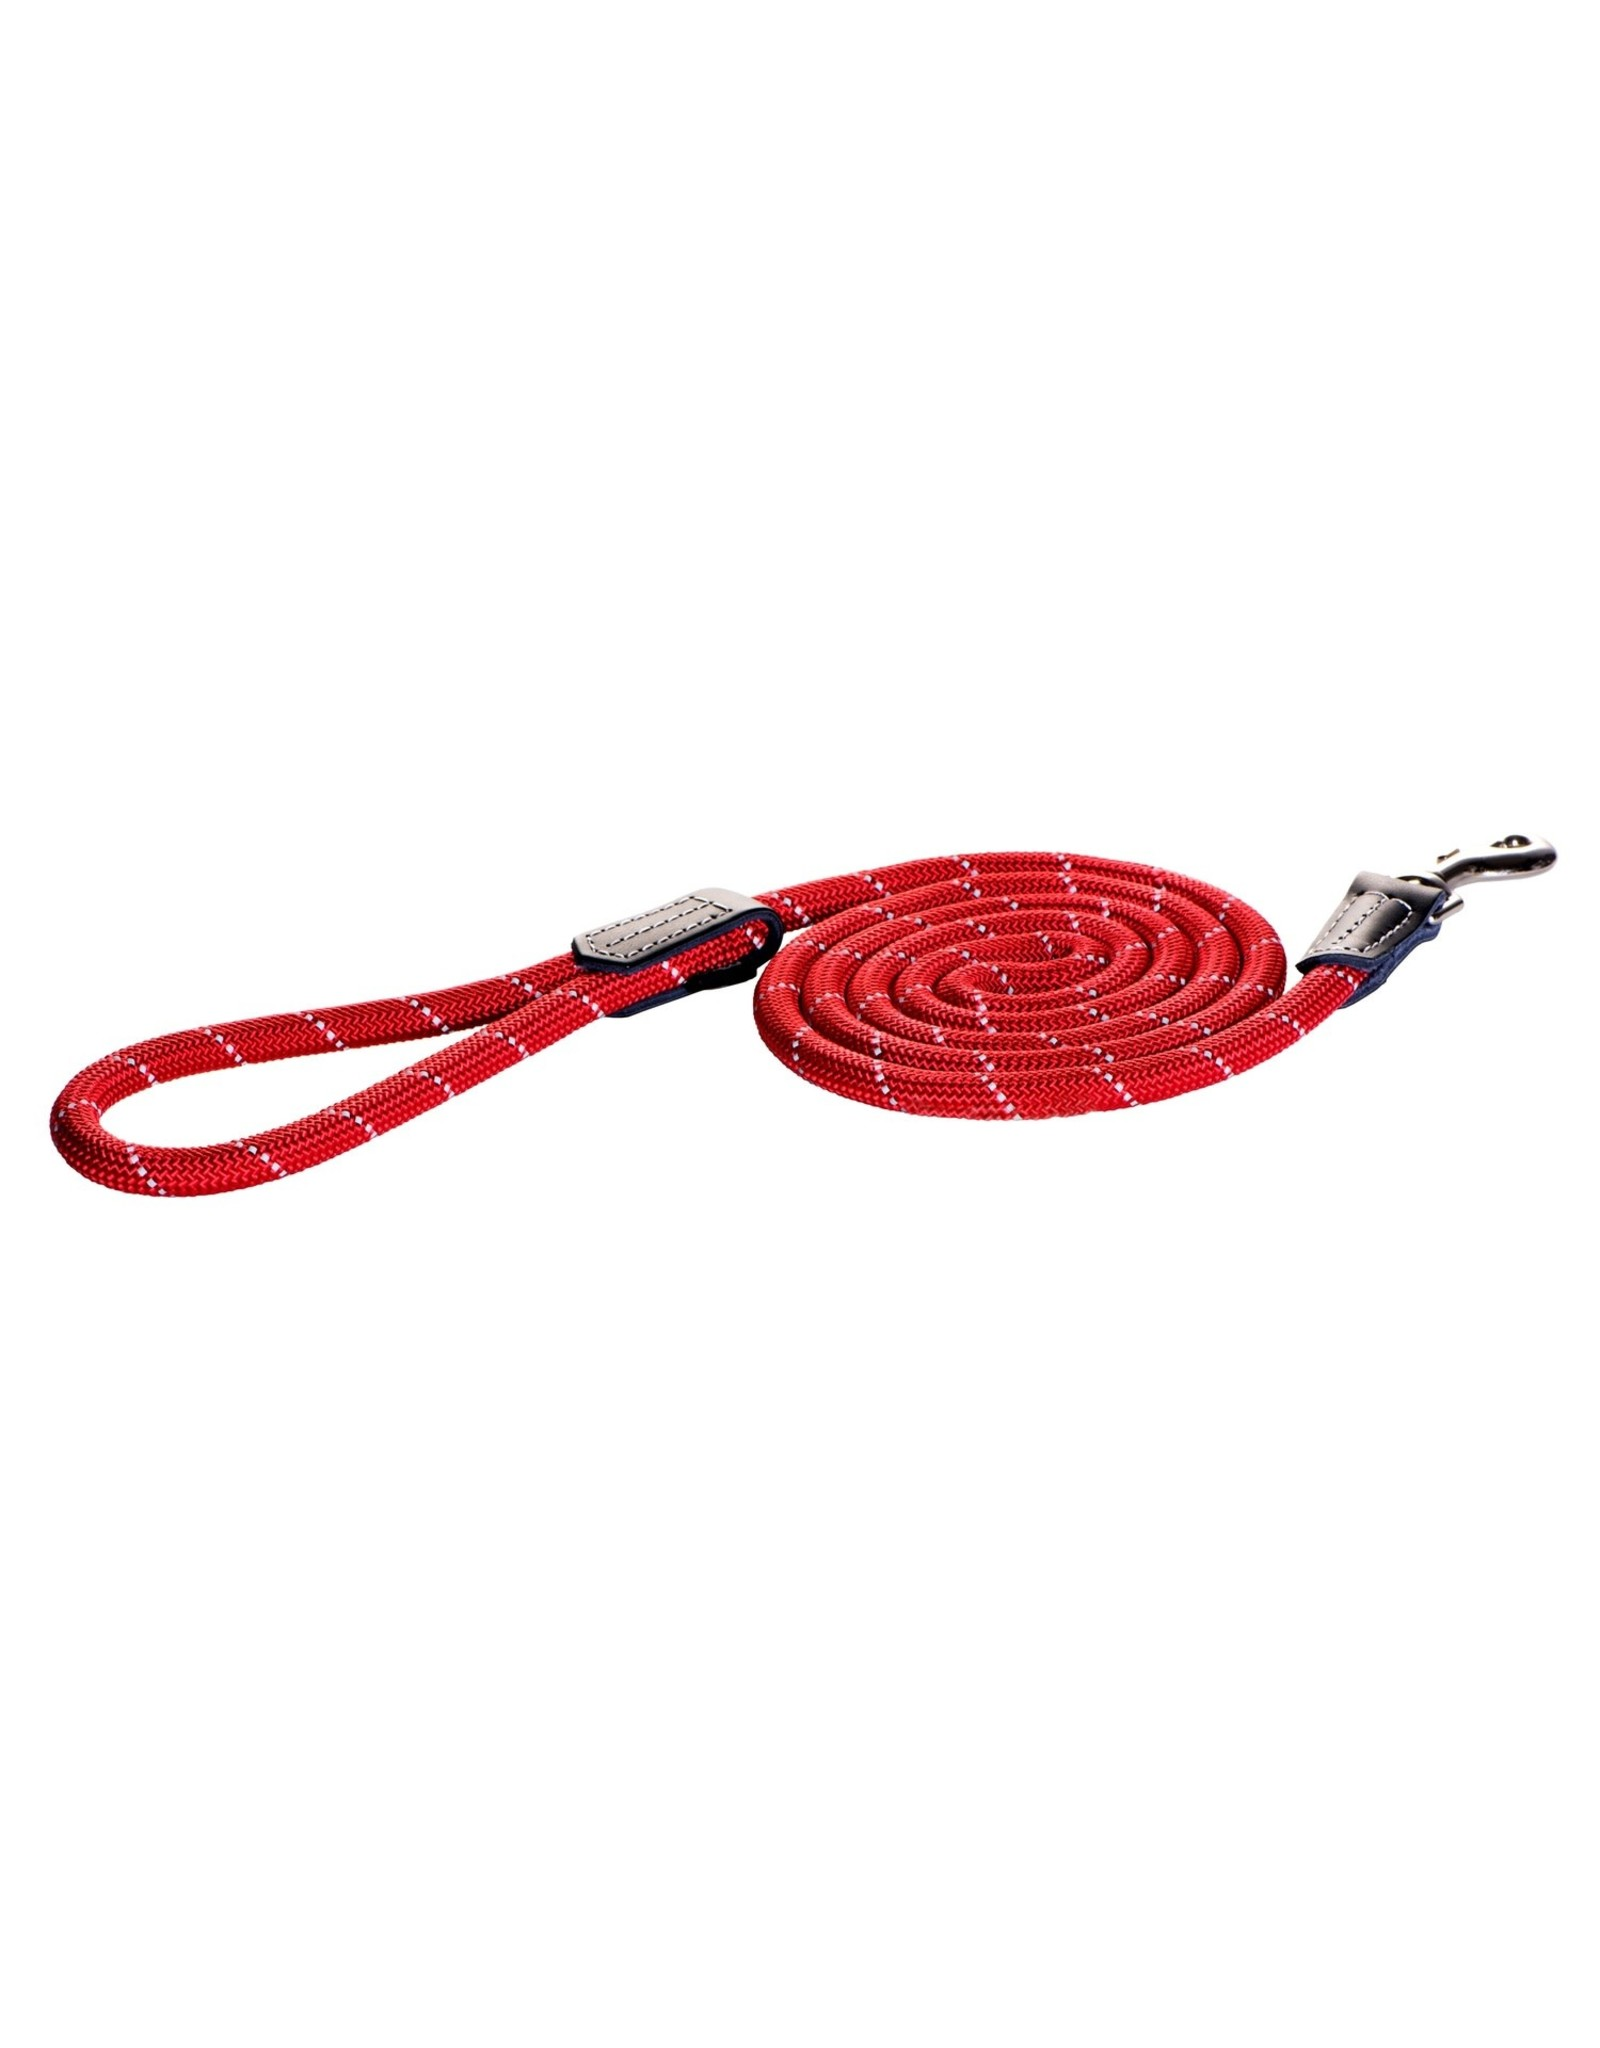 Large Rope Lead Red 1/2x6ft